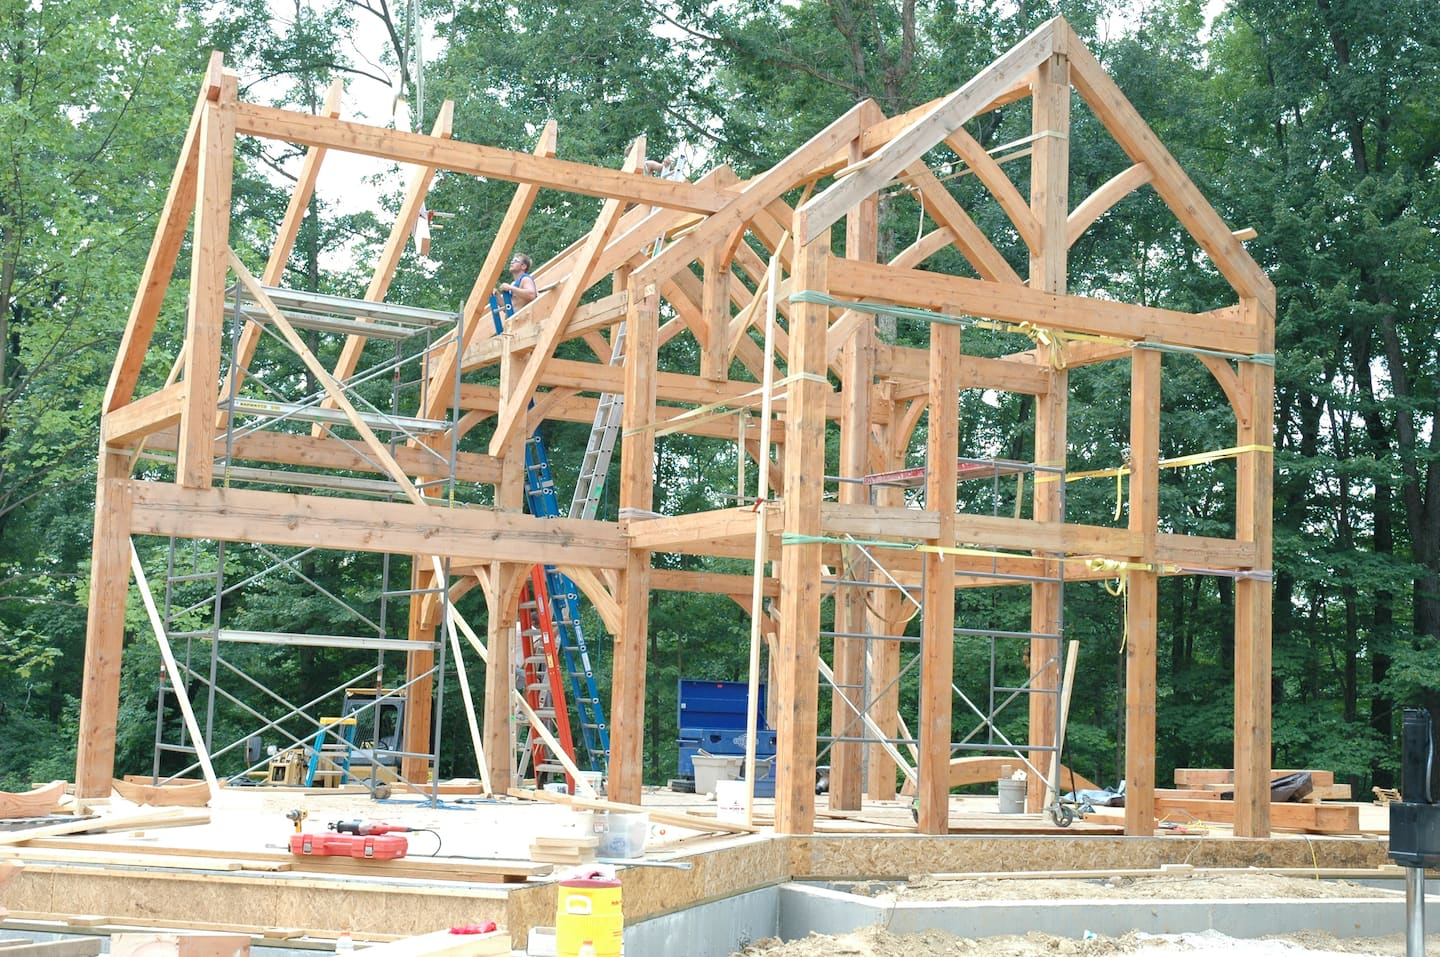 Cost to build a new house in austin - Cost To Build A New House In Austin 30